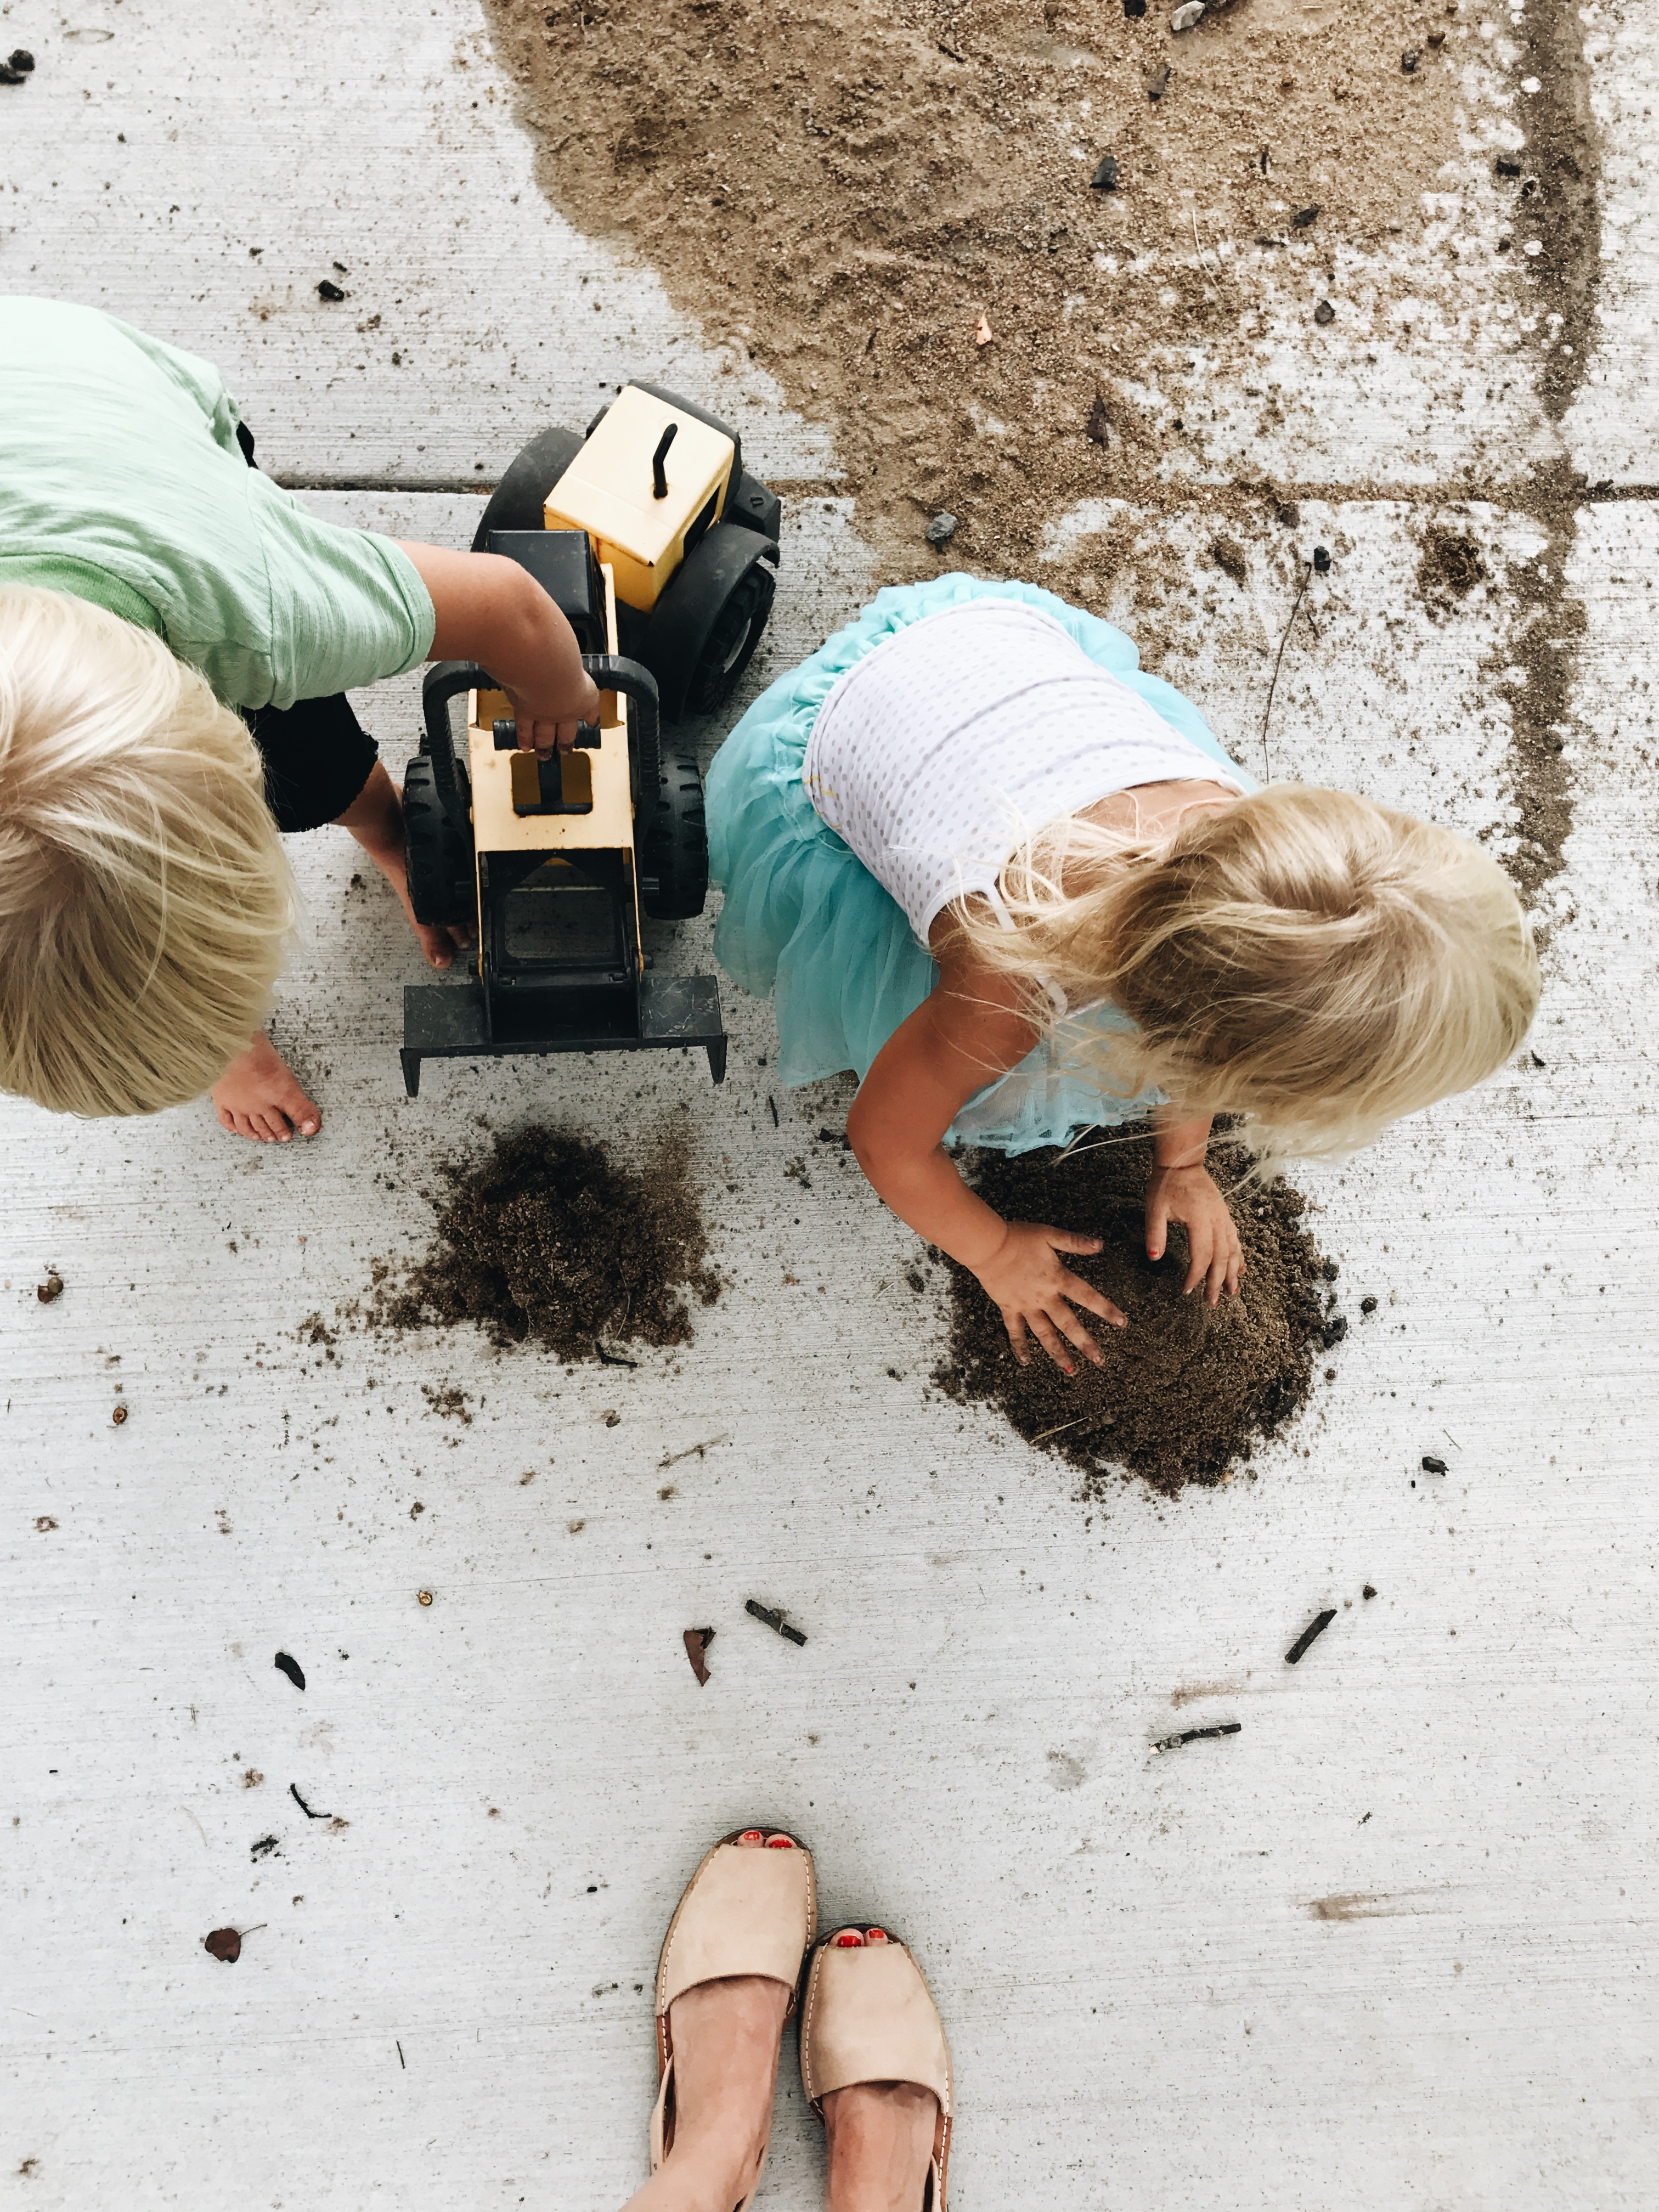 kids and dirt. and feet.